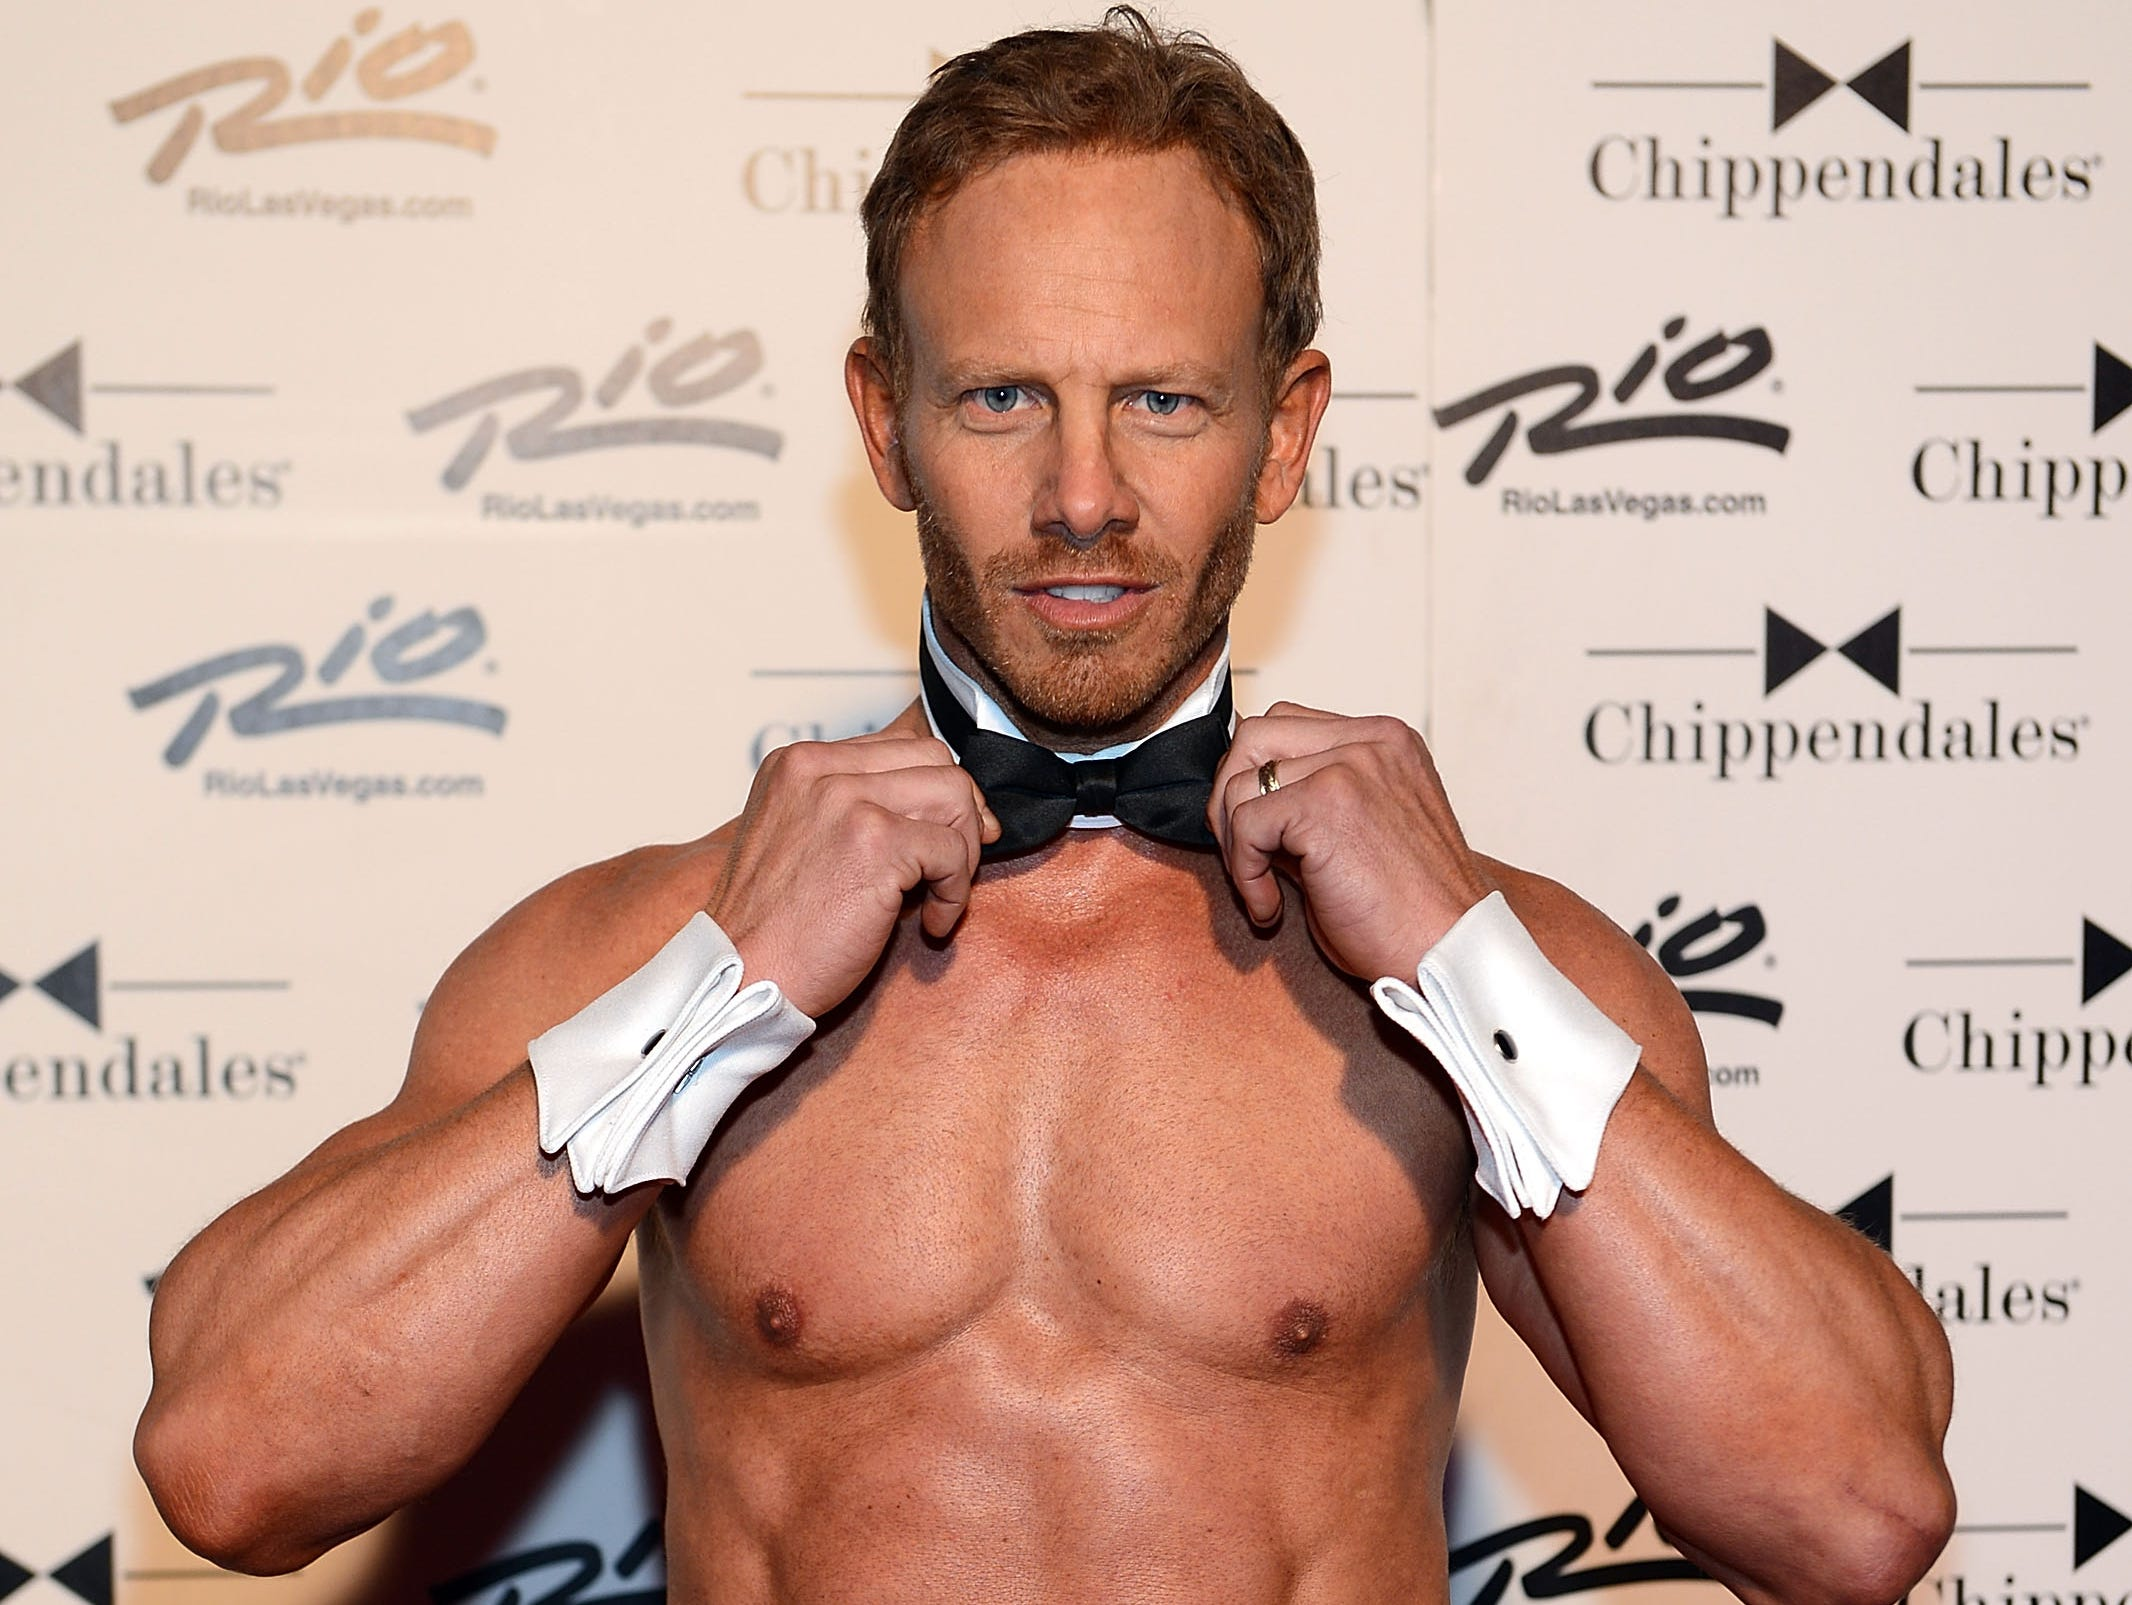 Ziering now: A 49-year-old married father of two, Ziering went, yes, shirtless on a red carpet with his fellow strippers in June.   Measure of metamorphosis: 3